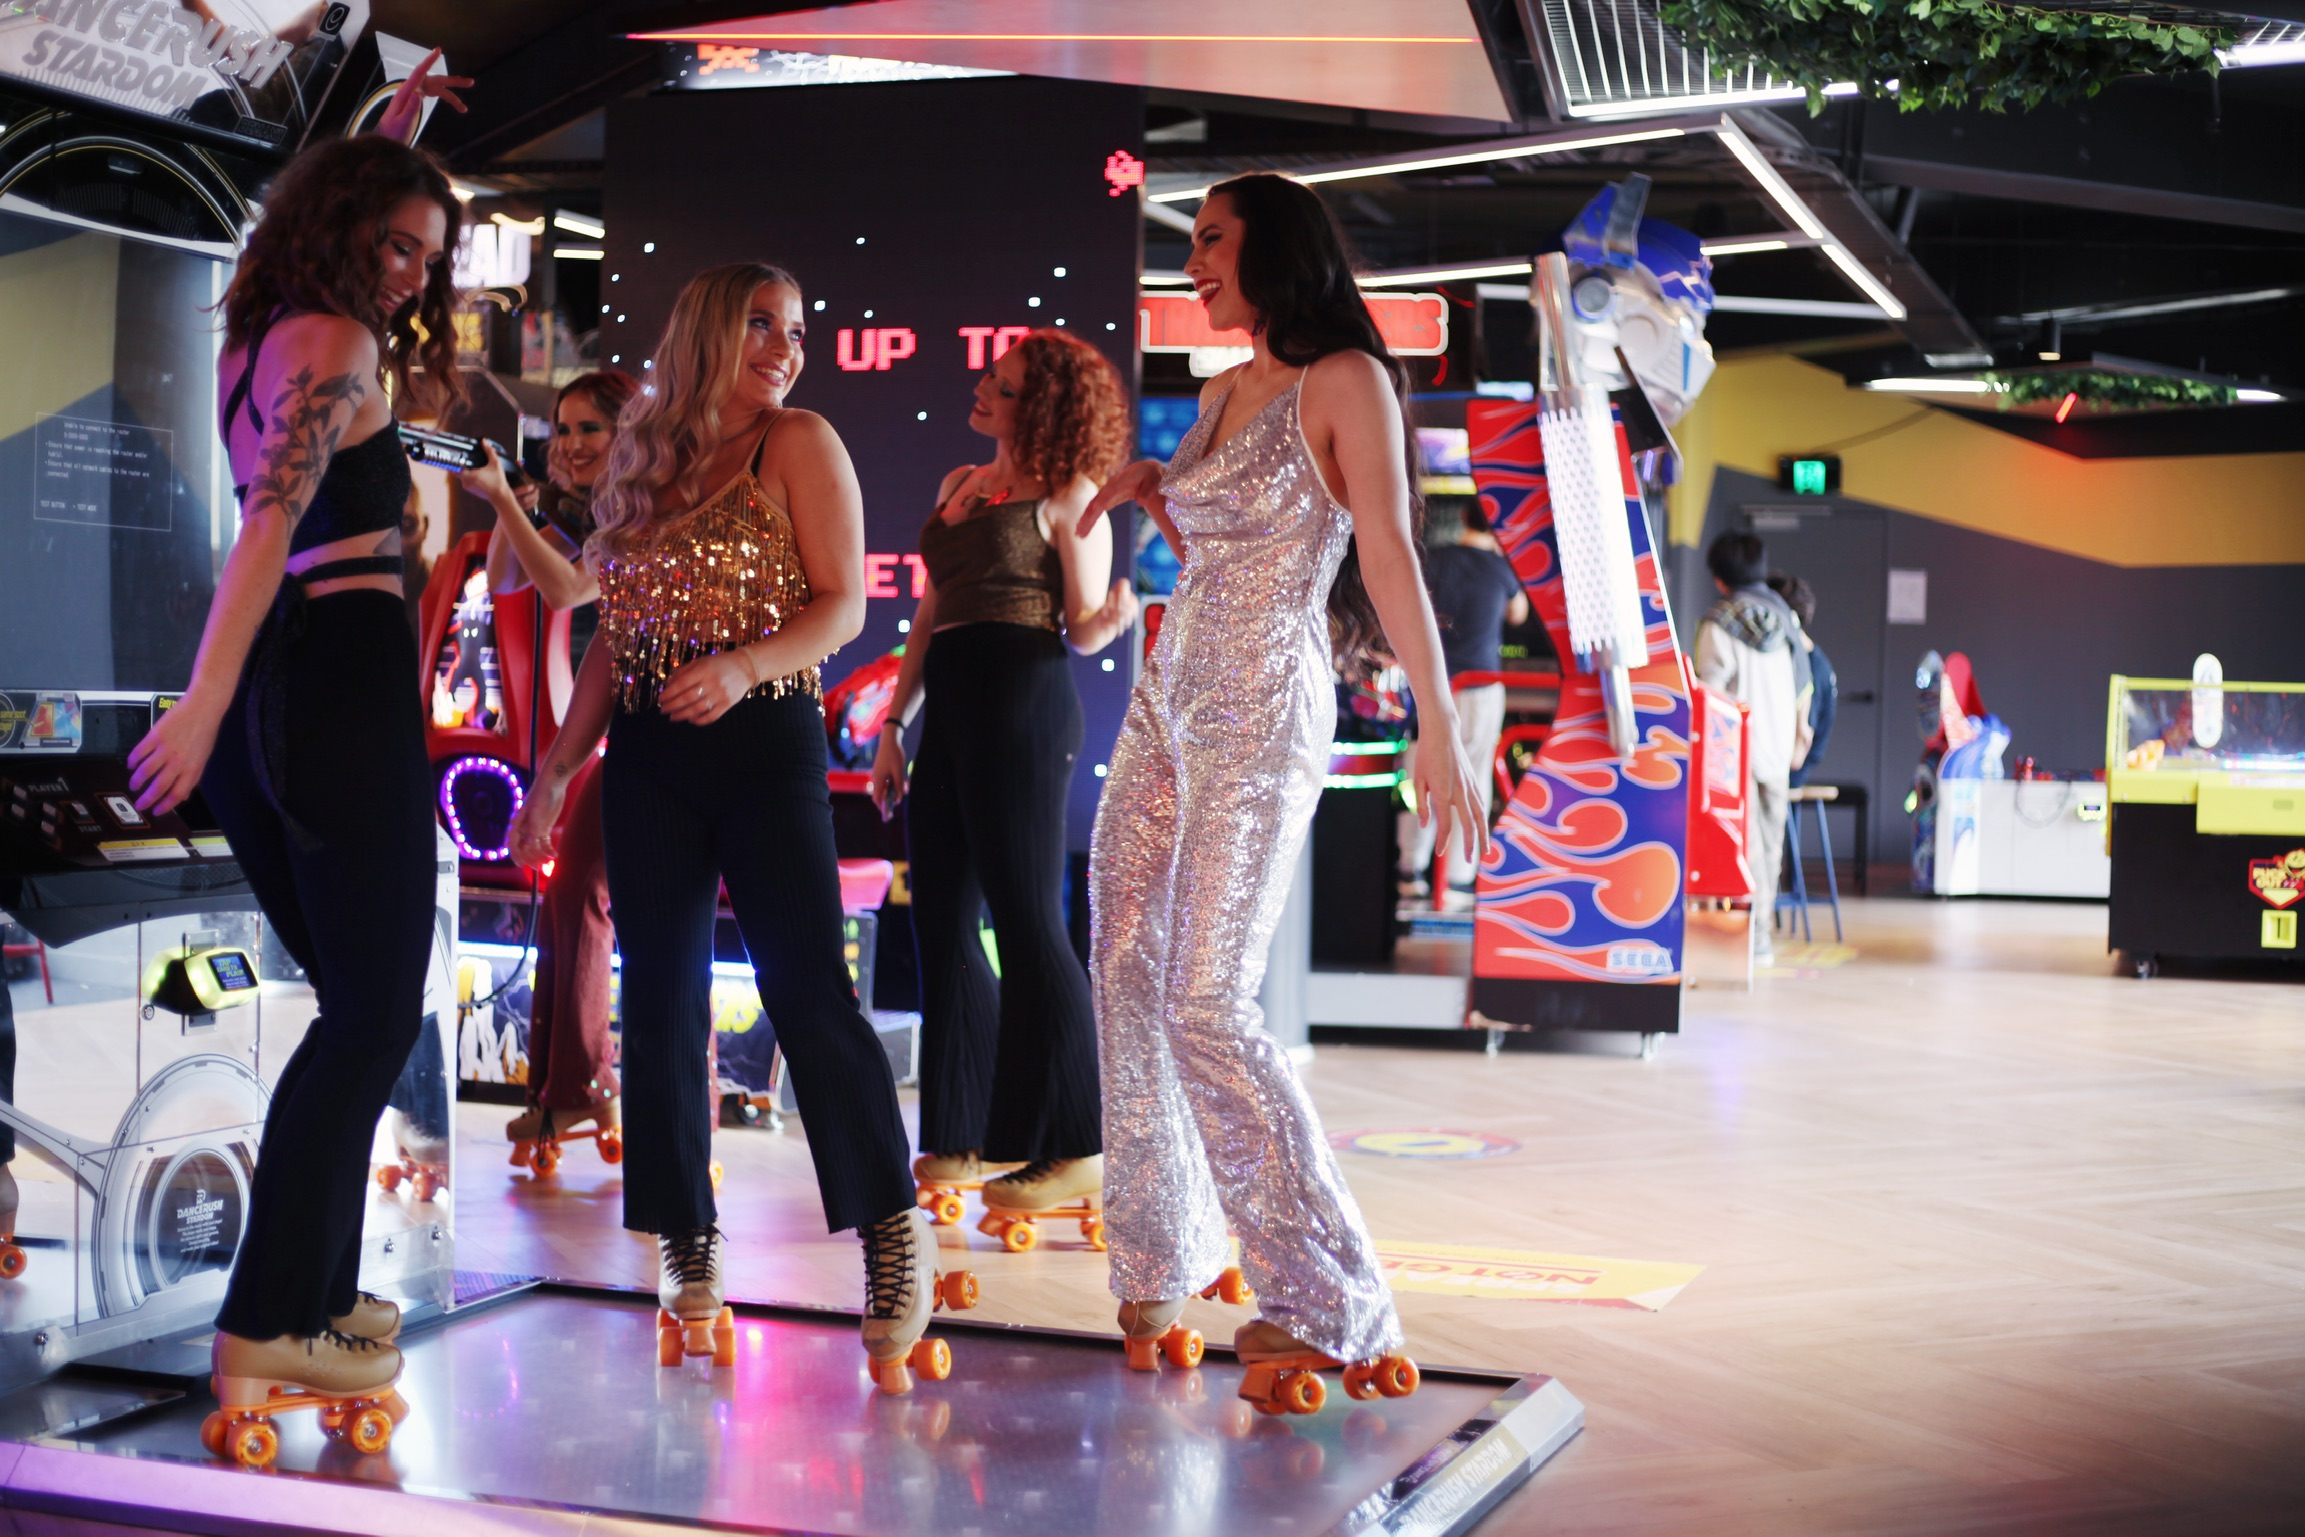 roller skating girls dance inside an arcade looking happy and smiling